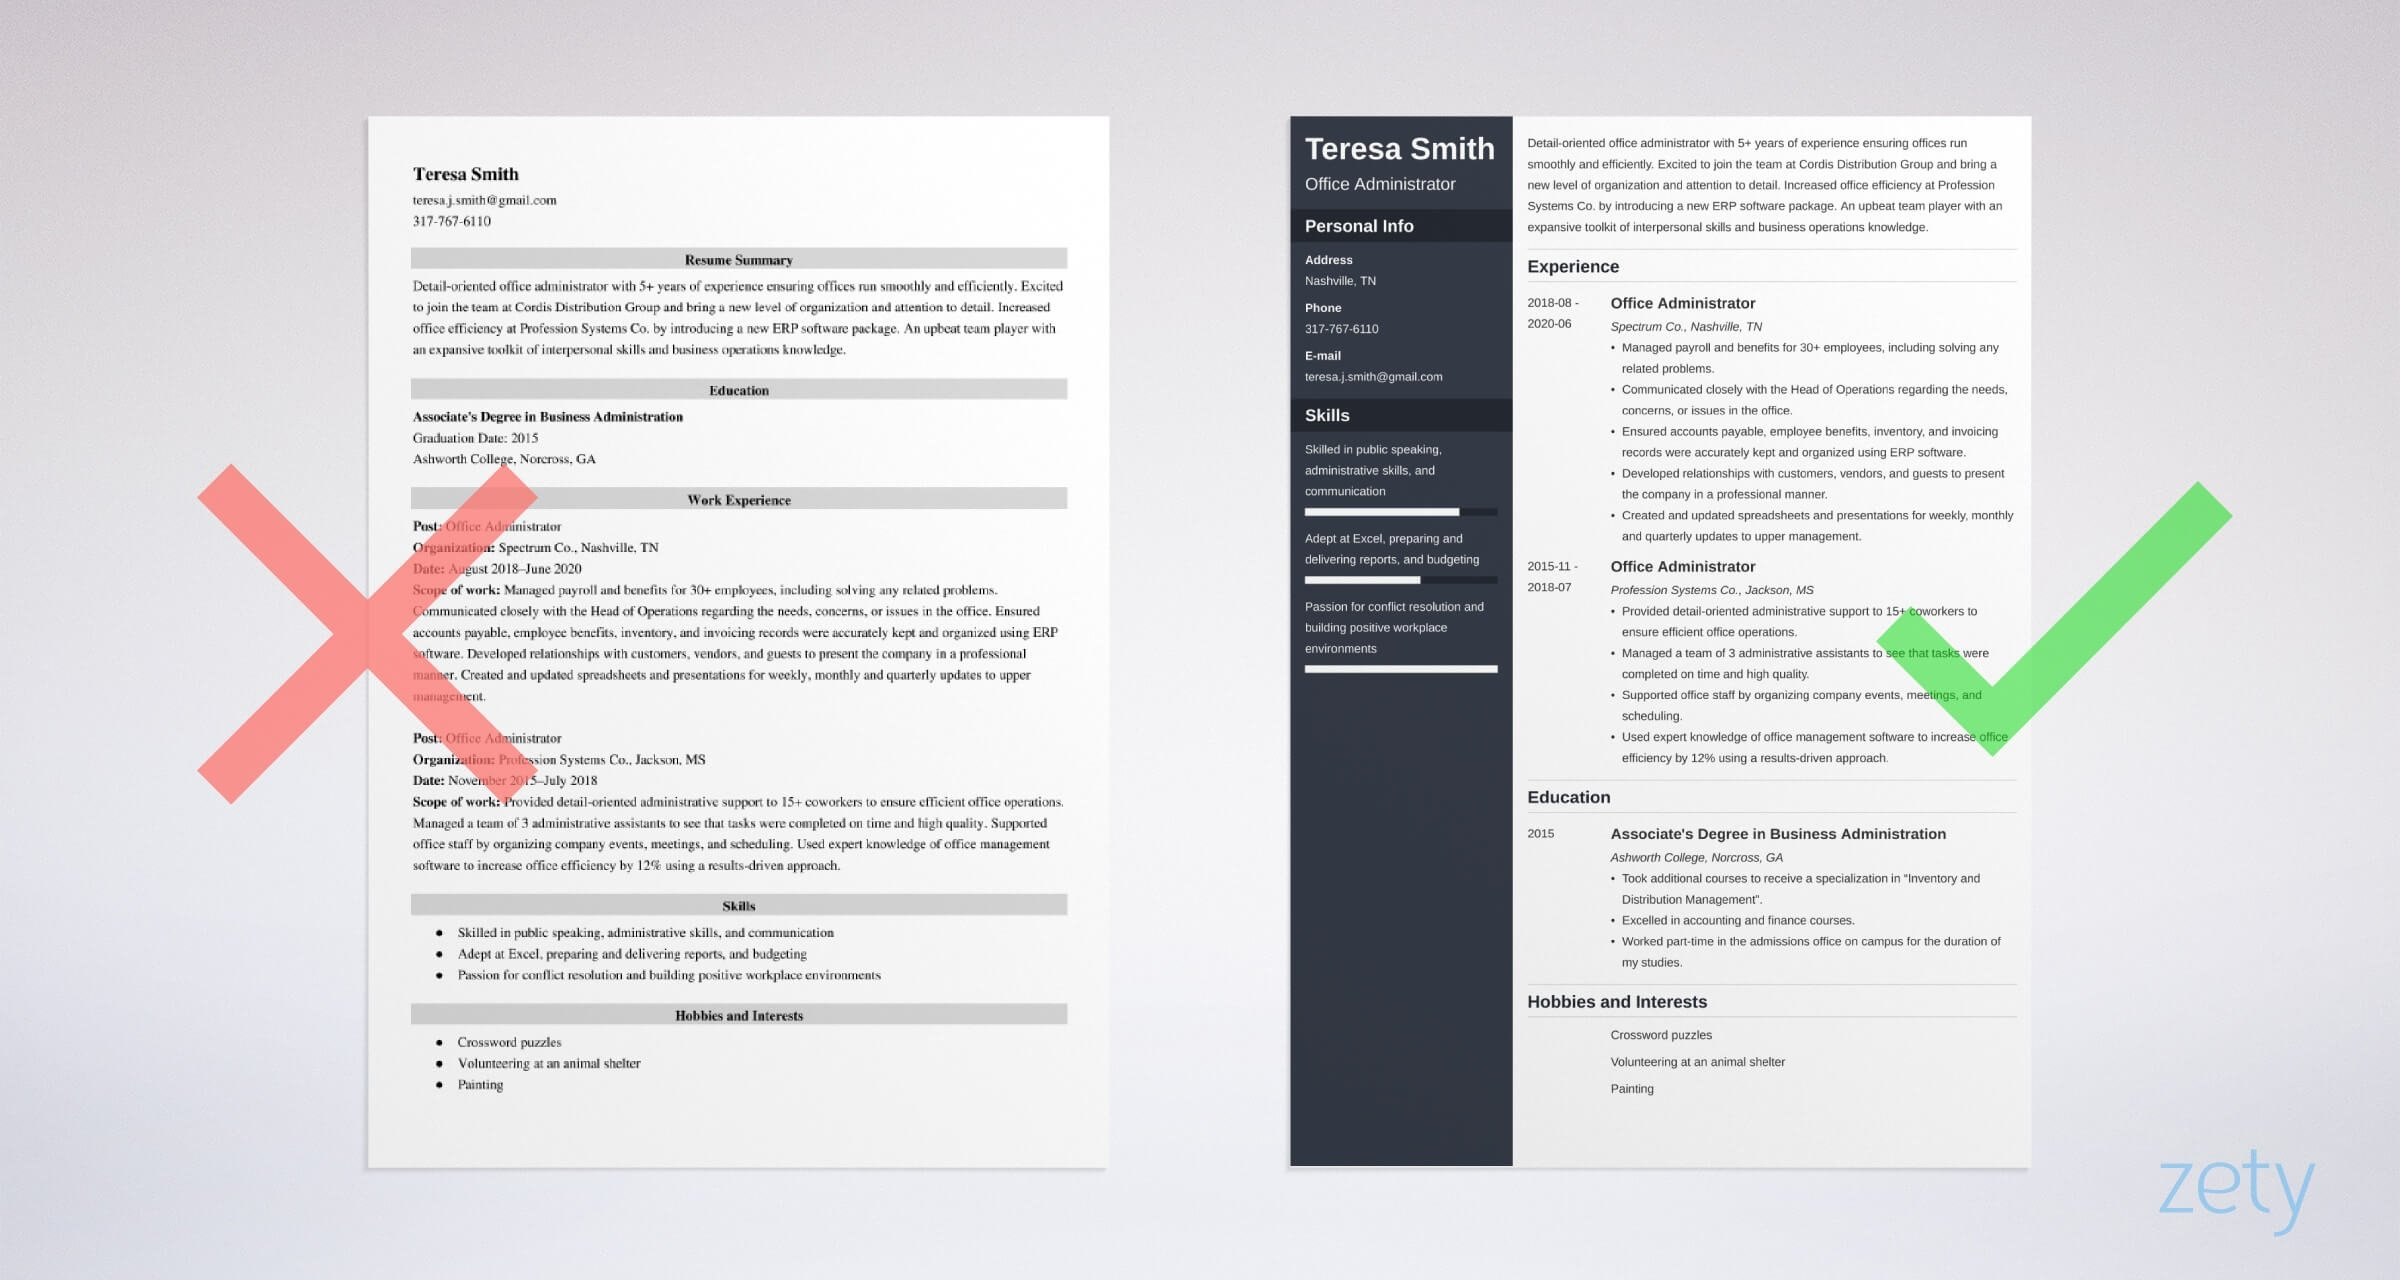 office administrator resume examples and guide tips doing business crossword example zety Resume Resume Doing Business Crossword